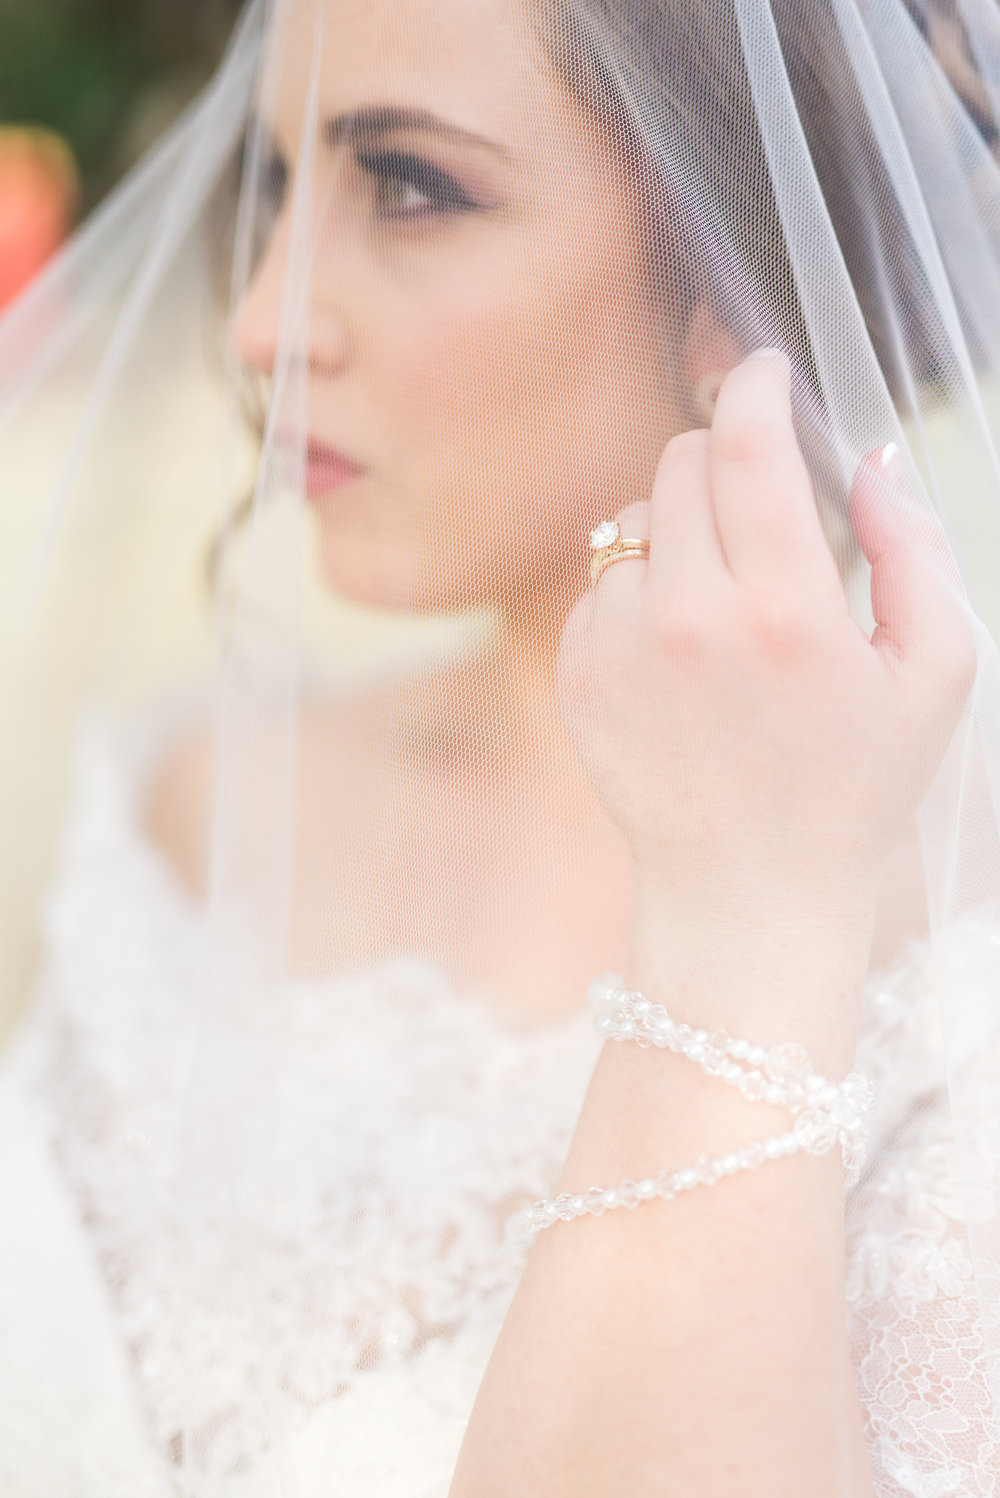 Gold Collection - $4250 - 8 hours photo + video coverageApproximately 700 edited, high-resolution imagesOur 3-4 minute Highlight Film with licensed musicWedding images + film/s supplied on our custom USBOnline gallery to share with friends and family